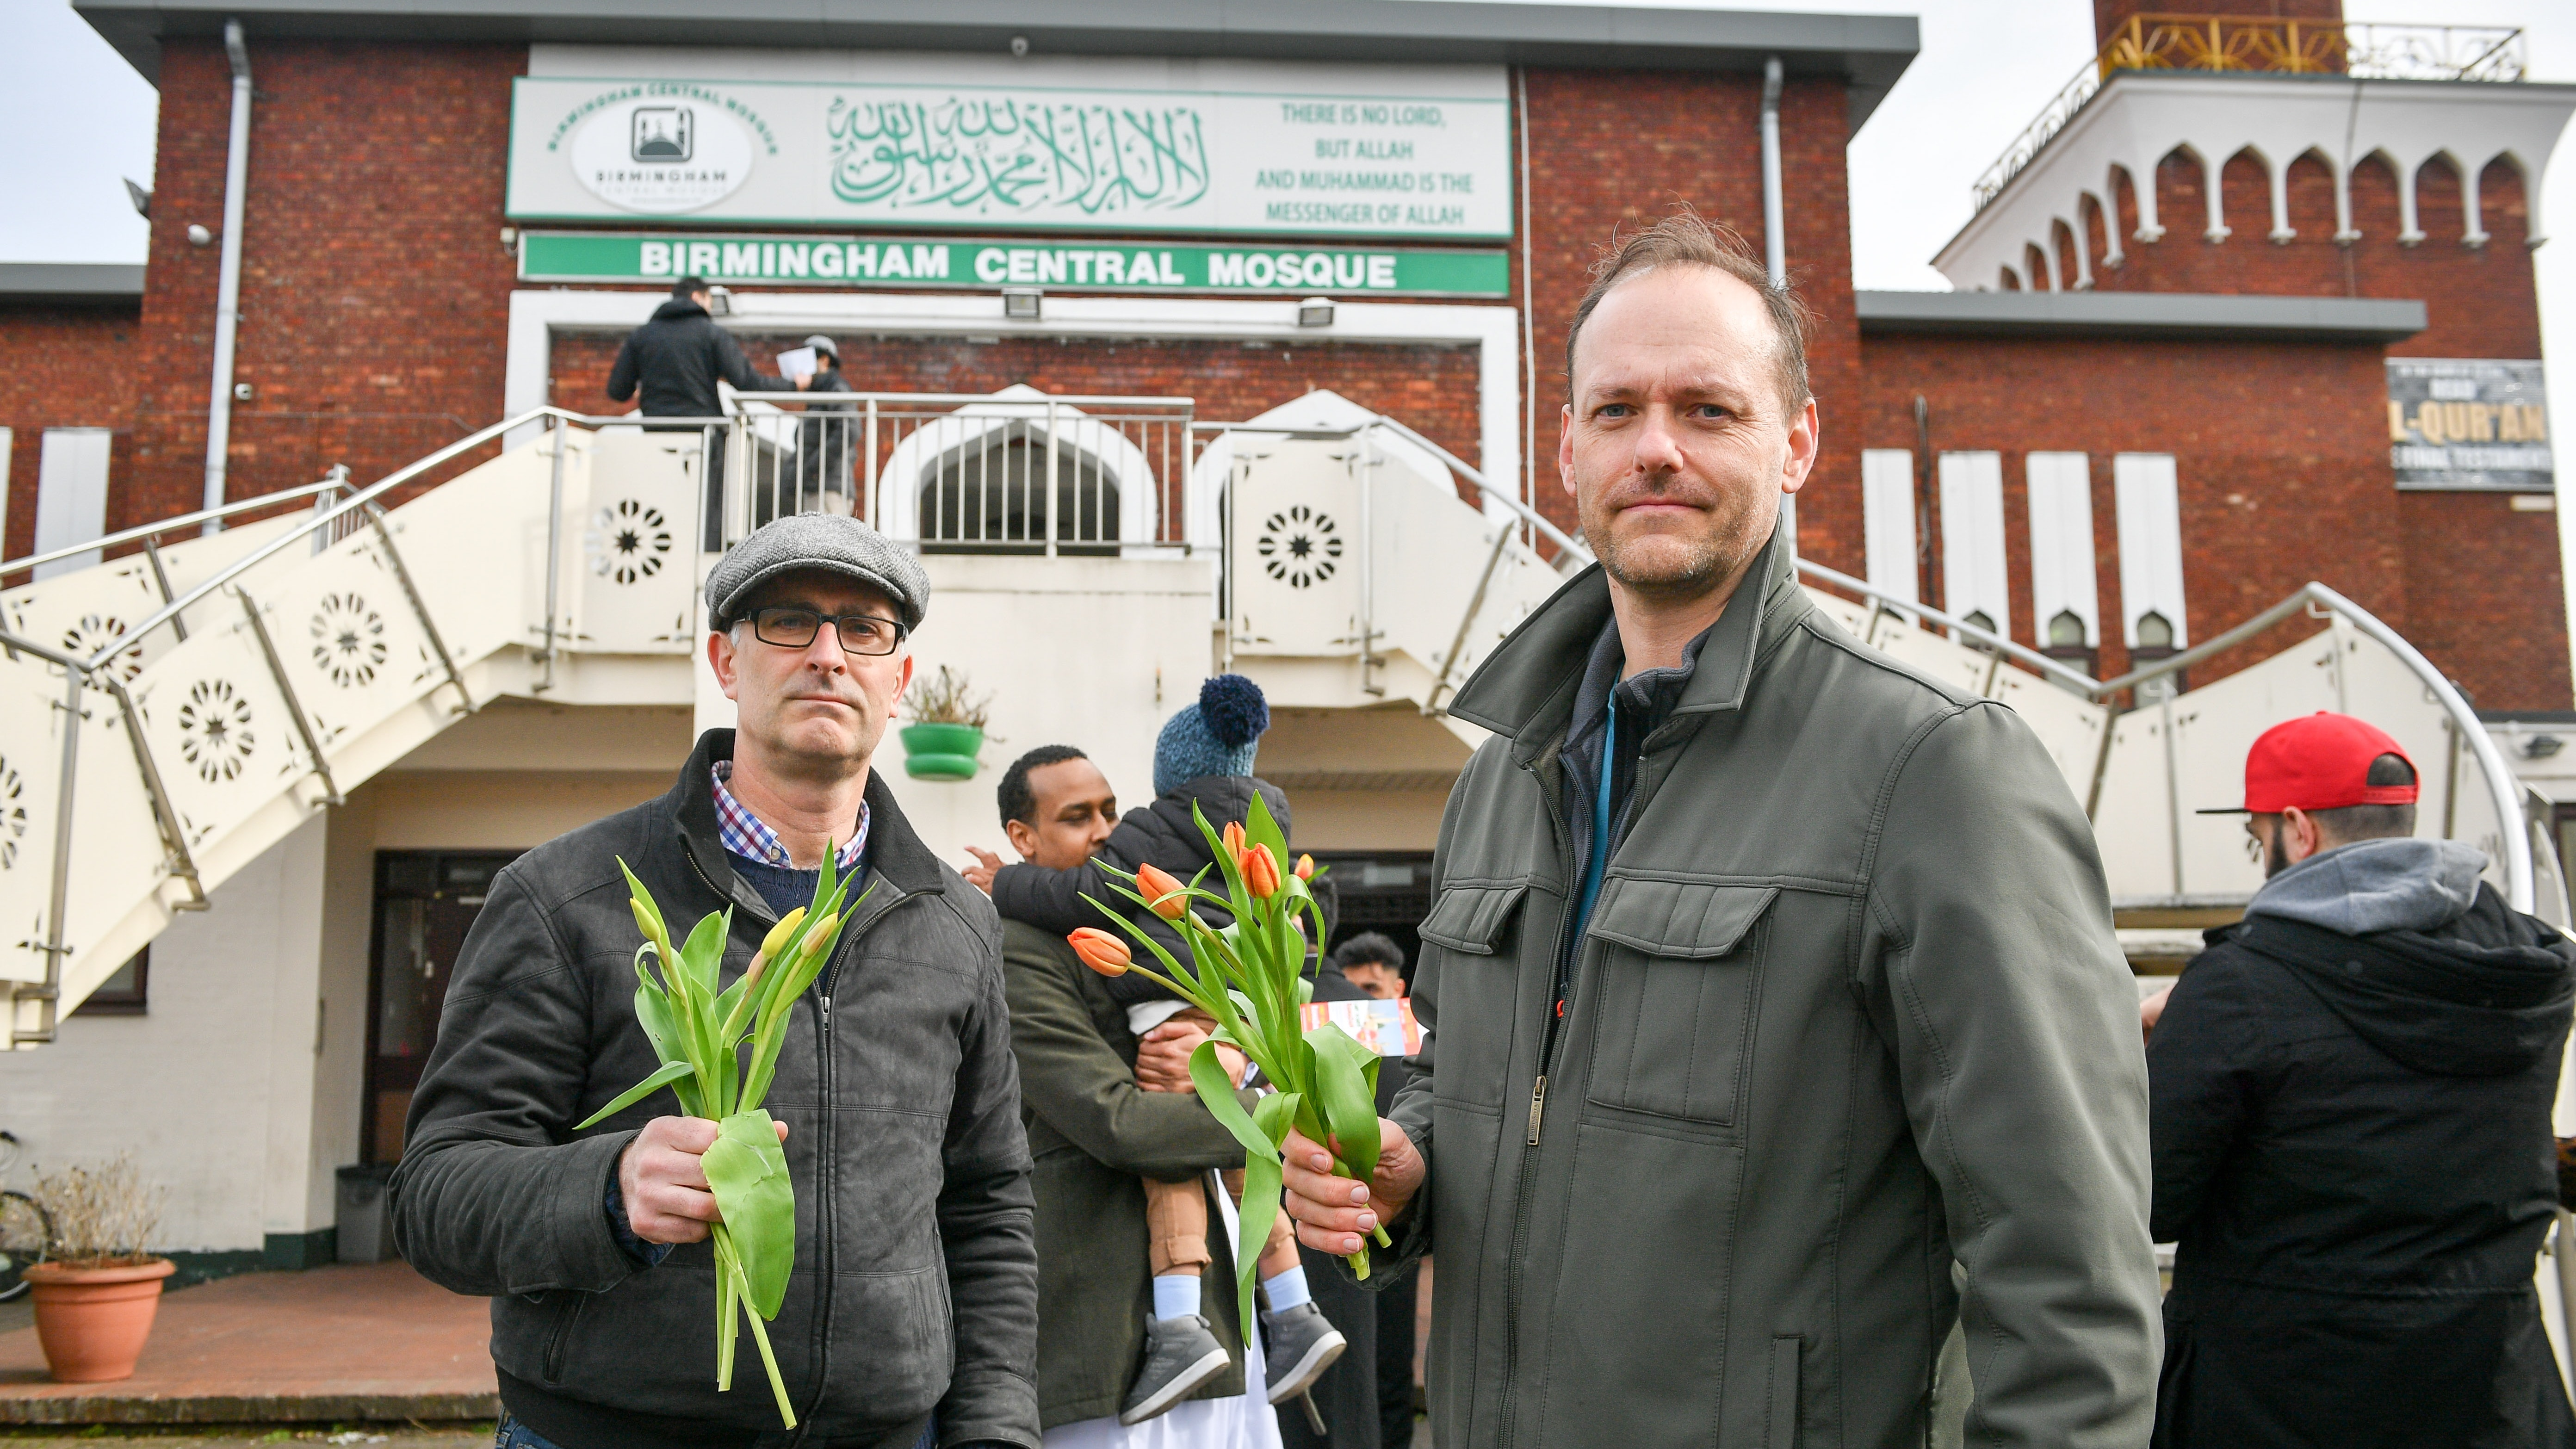 New Zealand Terror Attack Video Wallpaper: Christians Hand Out Flowers At Birmingham Mosque After New